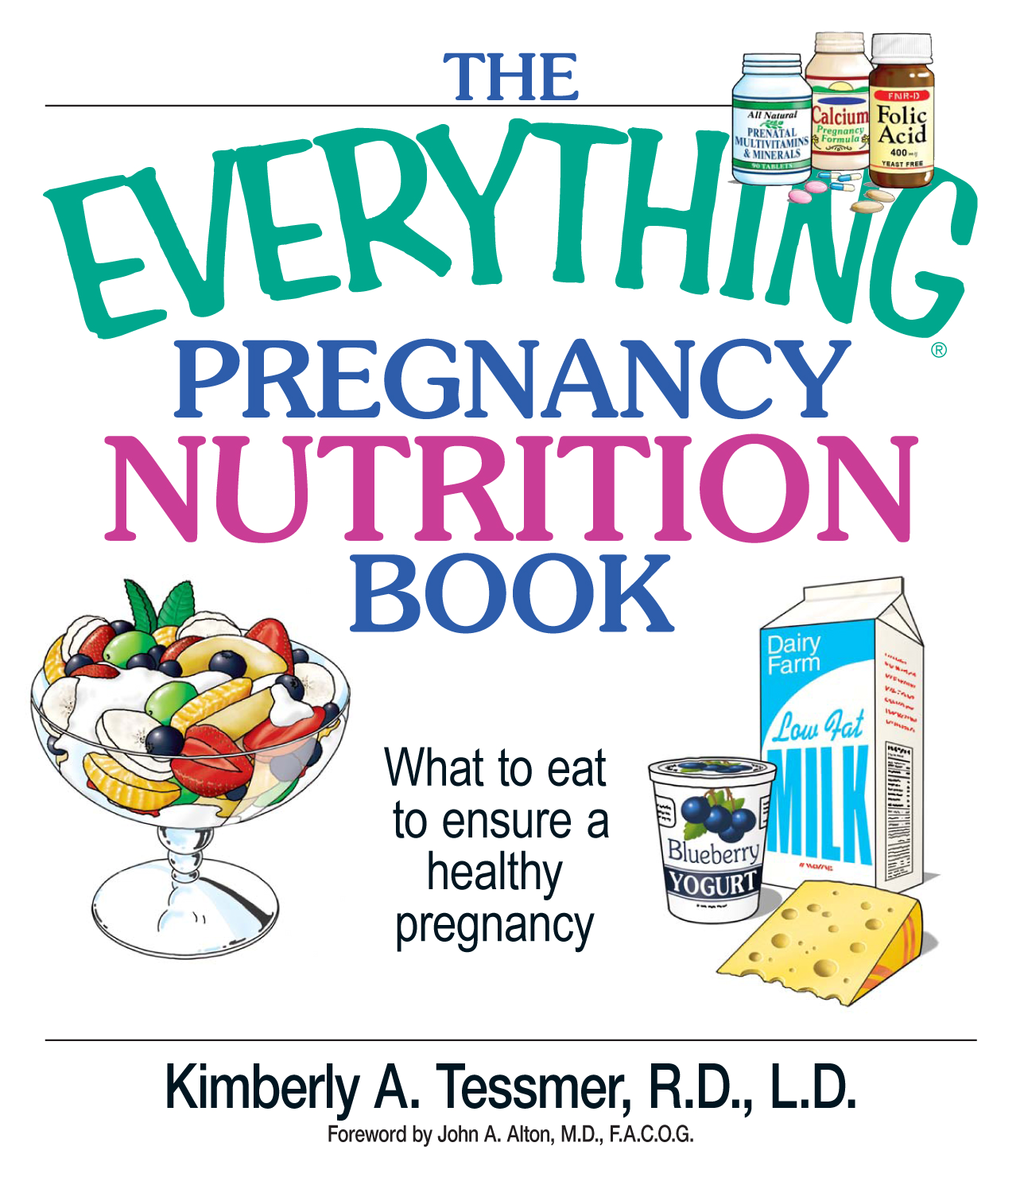 The Everything Pregnancy Nutrition Book: What To Eat To Ensure A Healthy Pregnancy By: Kimberly A. Tessmer